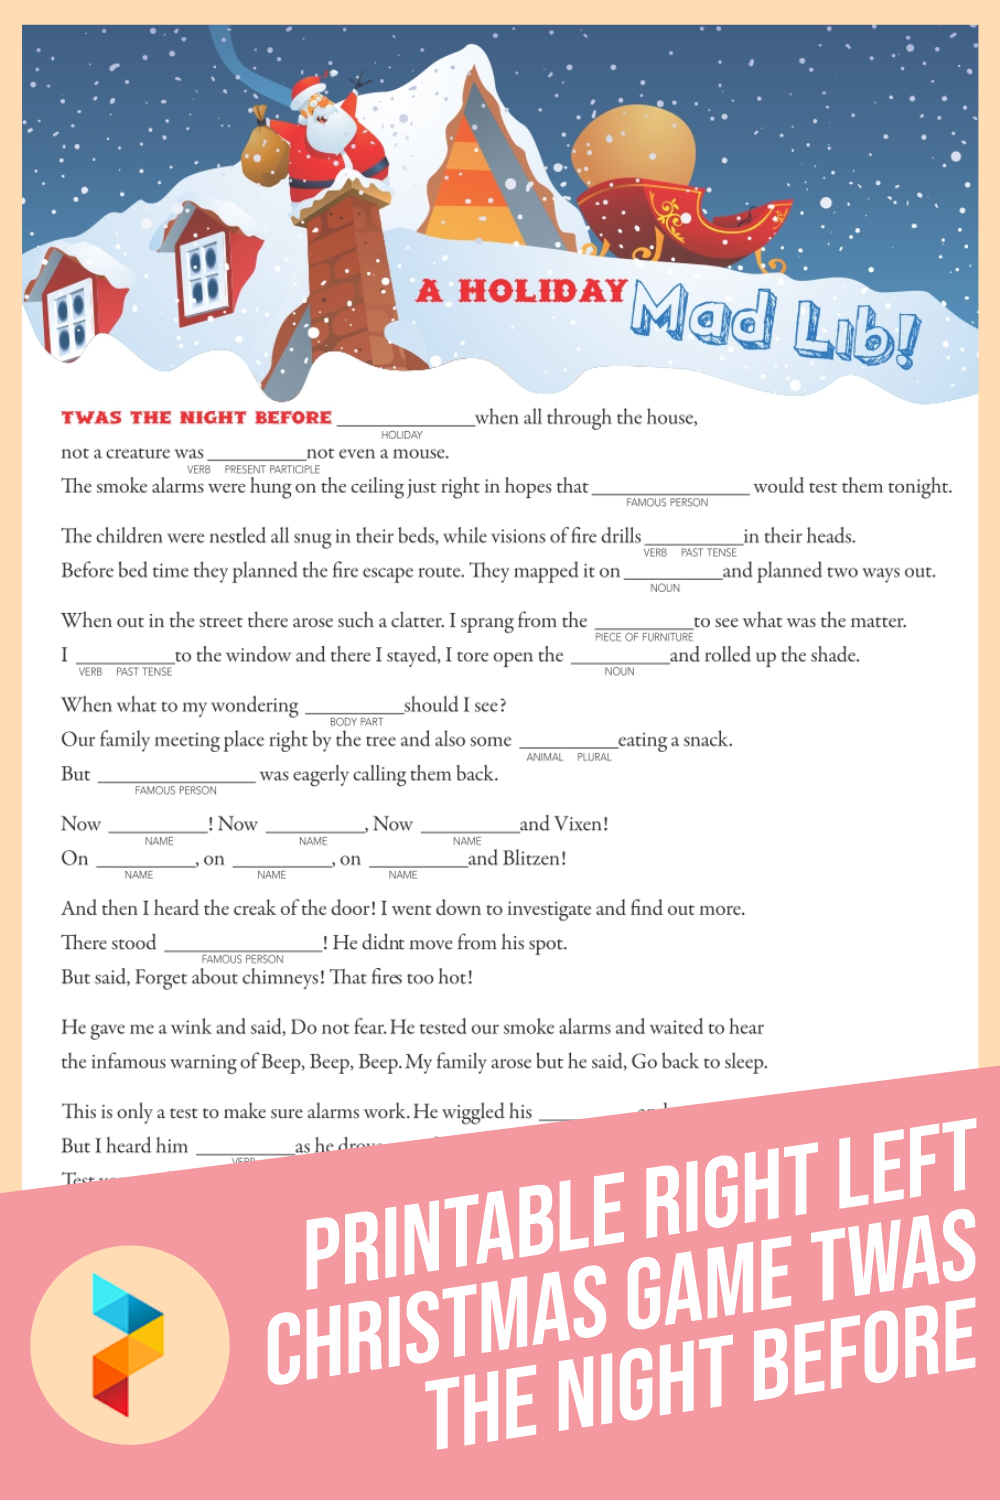 Printable Right Left Christmas Game Twas The Night Before